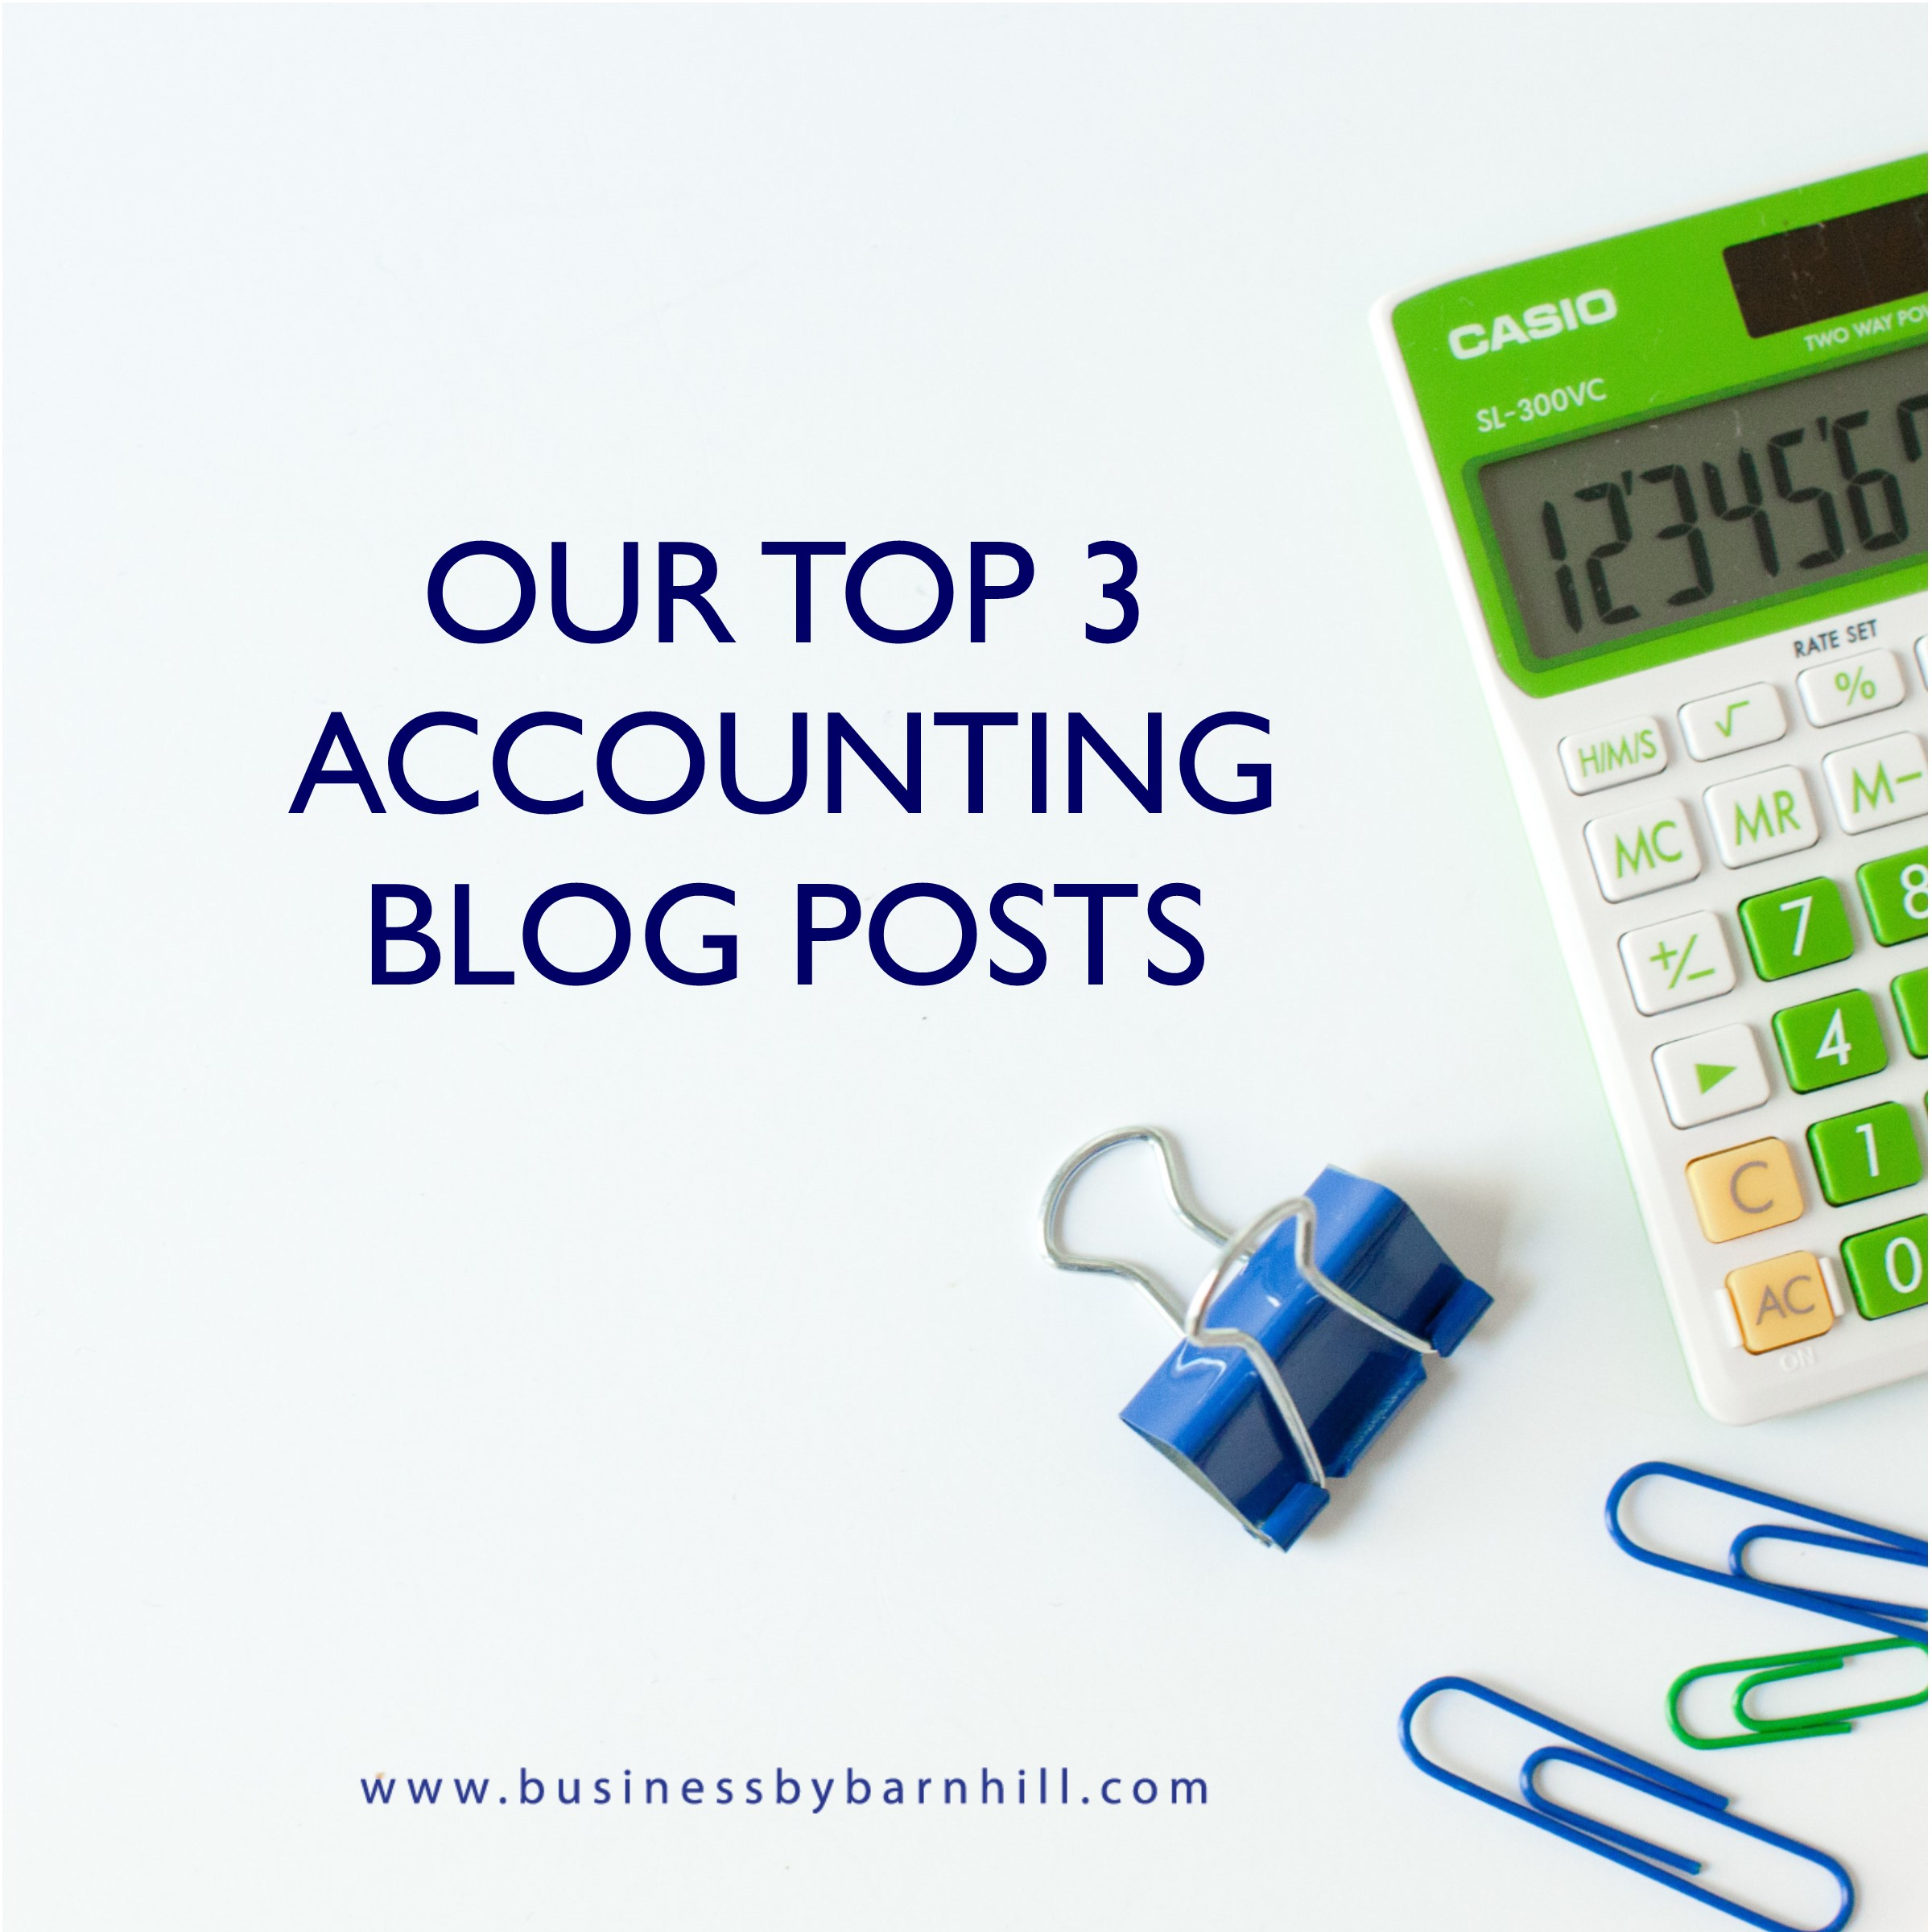 business by barnhill our top 3 accounting blog posts.jpg